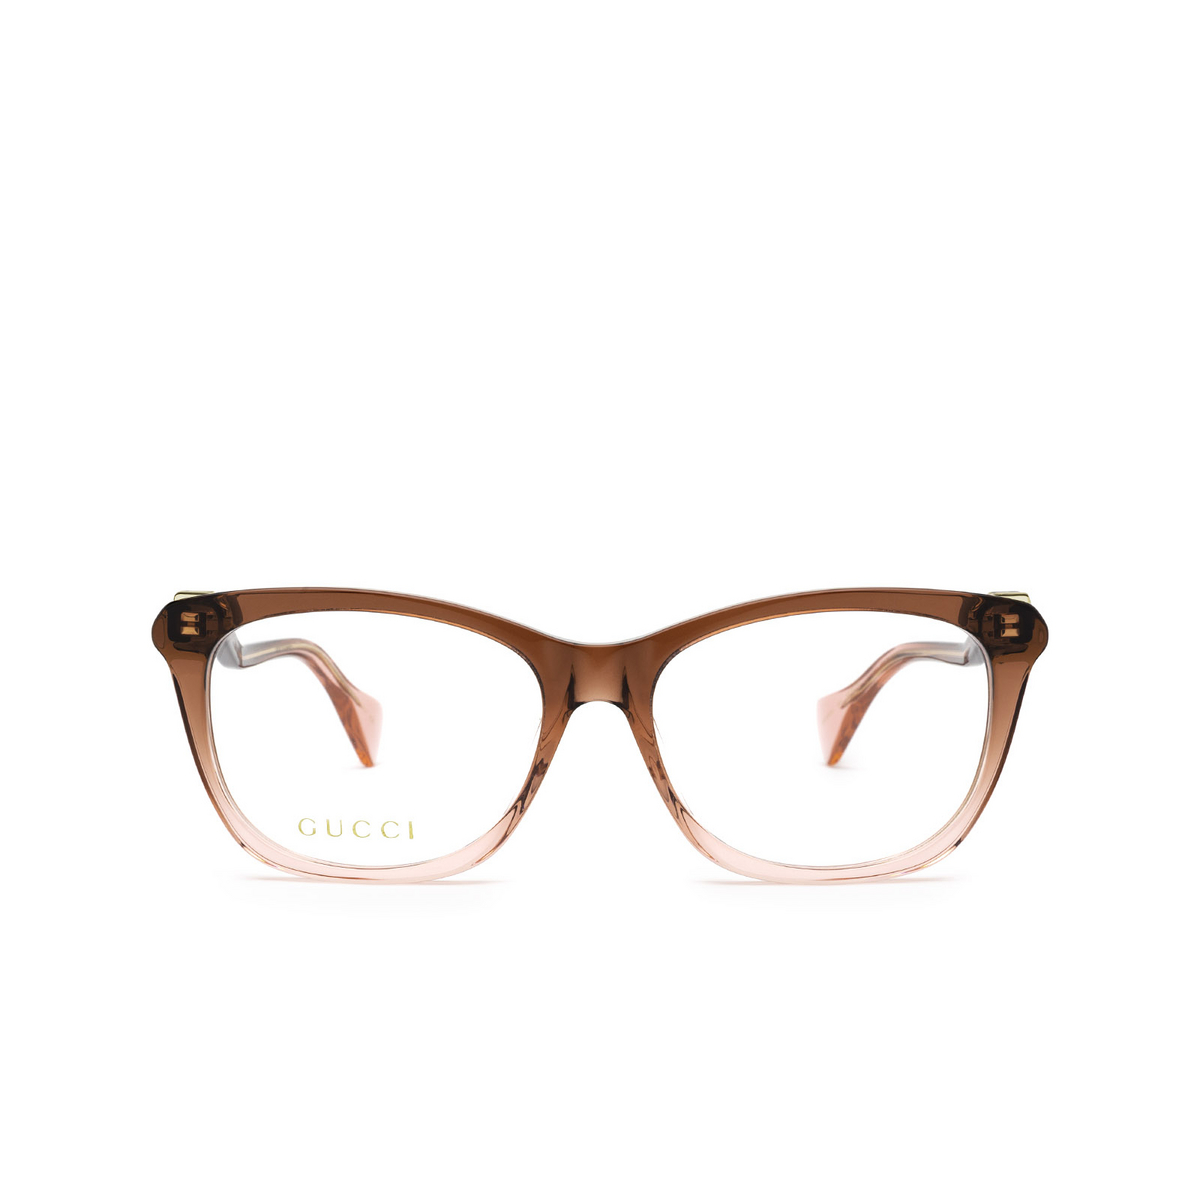 Gucci® Cat-eye Eyeglasses: GG1012O color Burgundy & Pink 003 - front view.